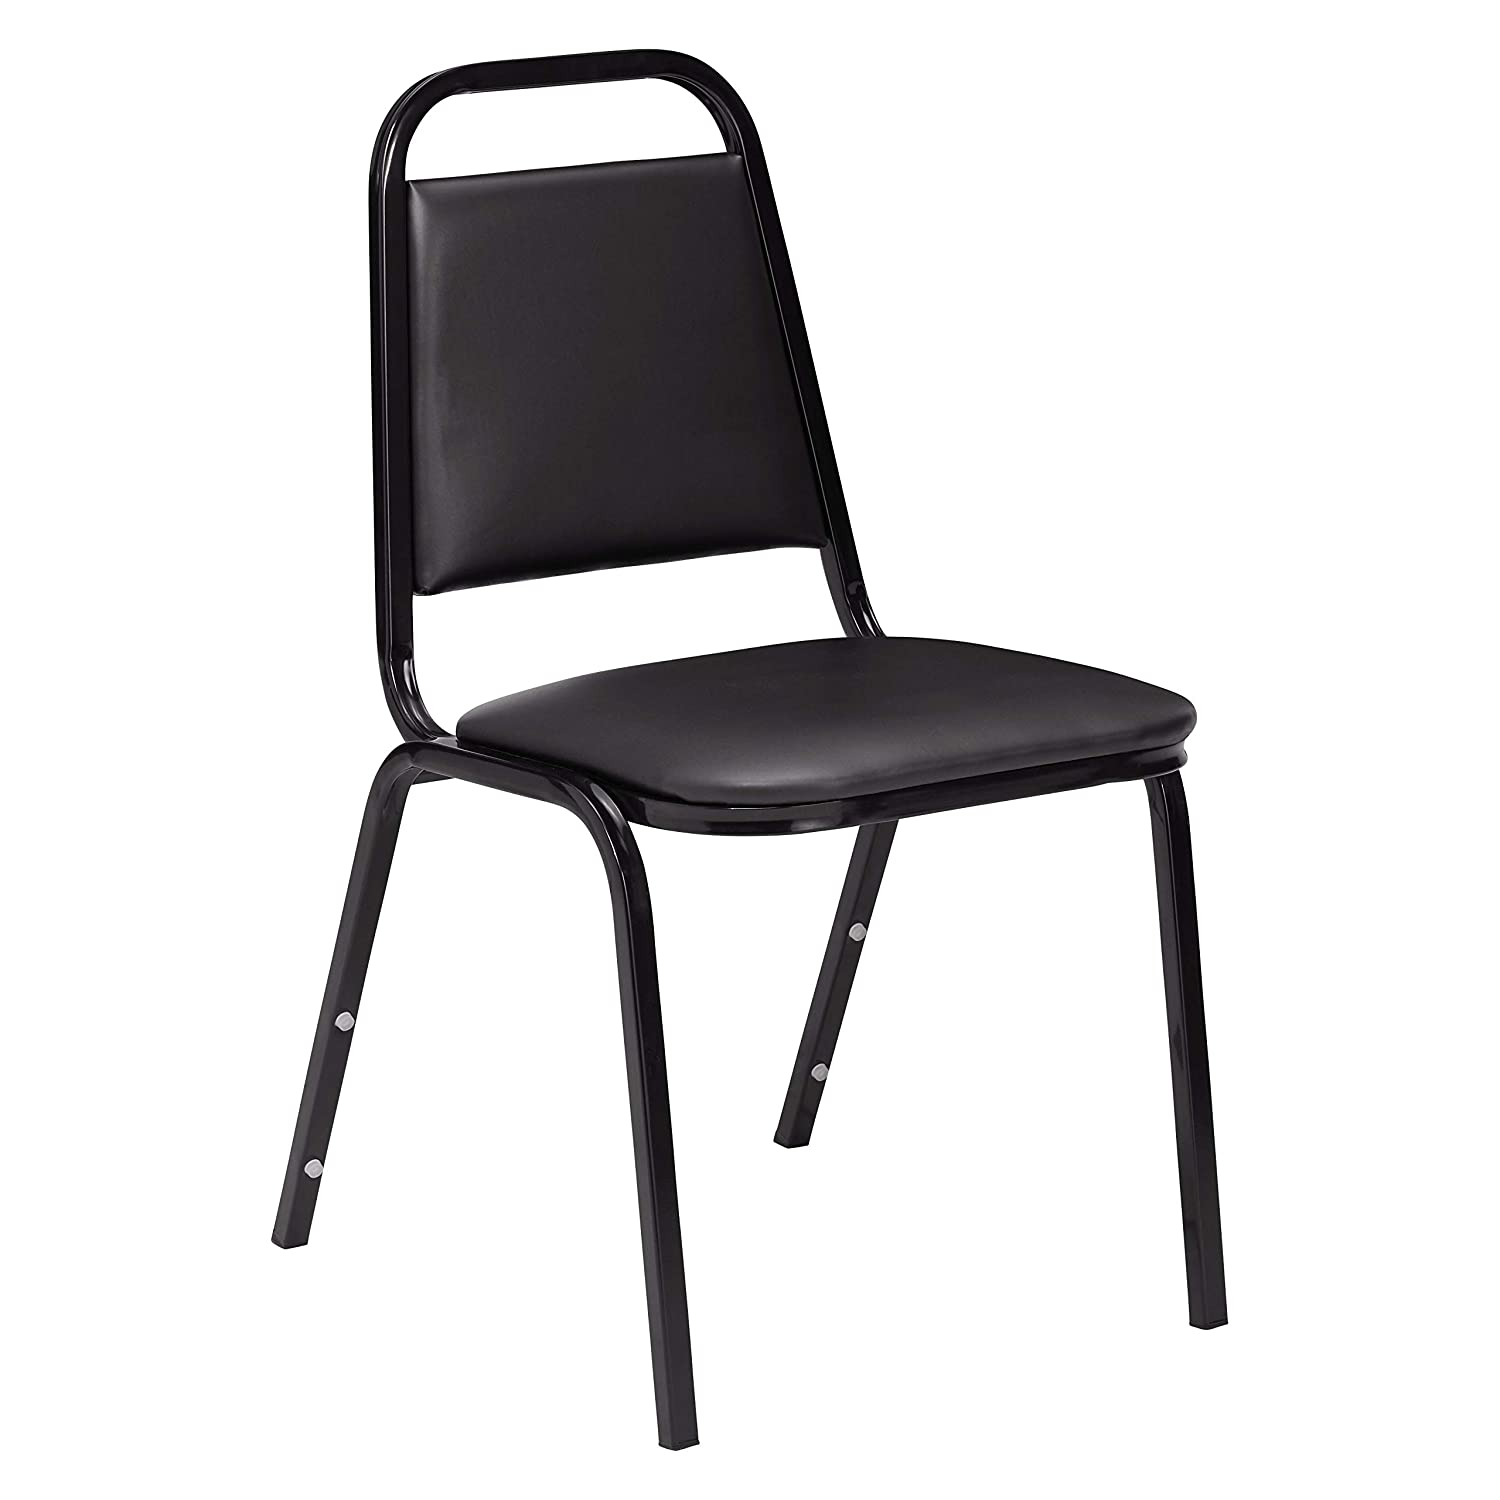 """NPS 9110-B Vinyl Upholstered Standard Stack Chair, 300 lbs Weight Capacity, 16"""" Length x 15-3/4"""" Width x 33"""" Height, Black"""